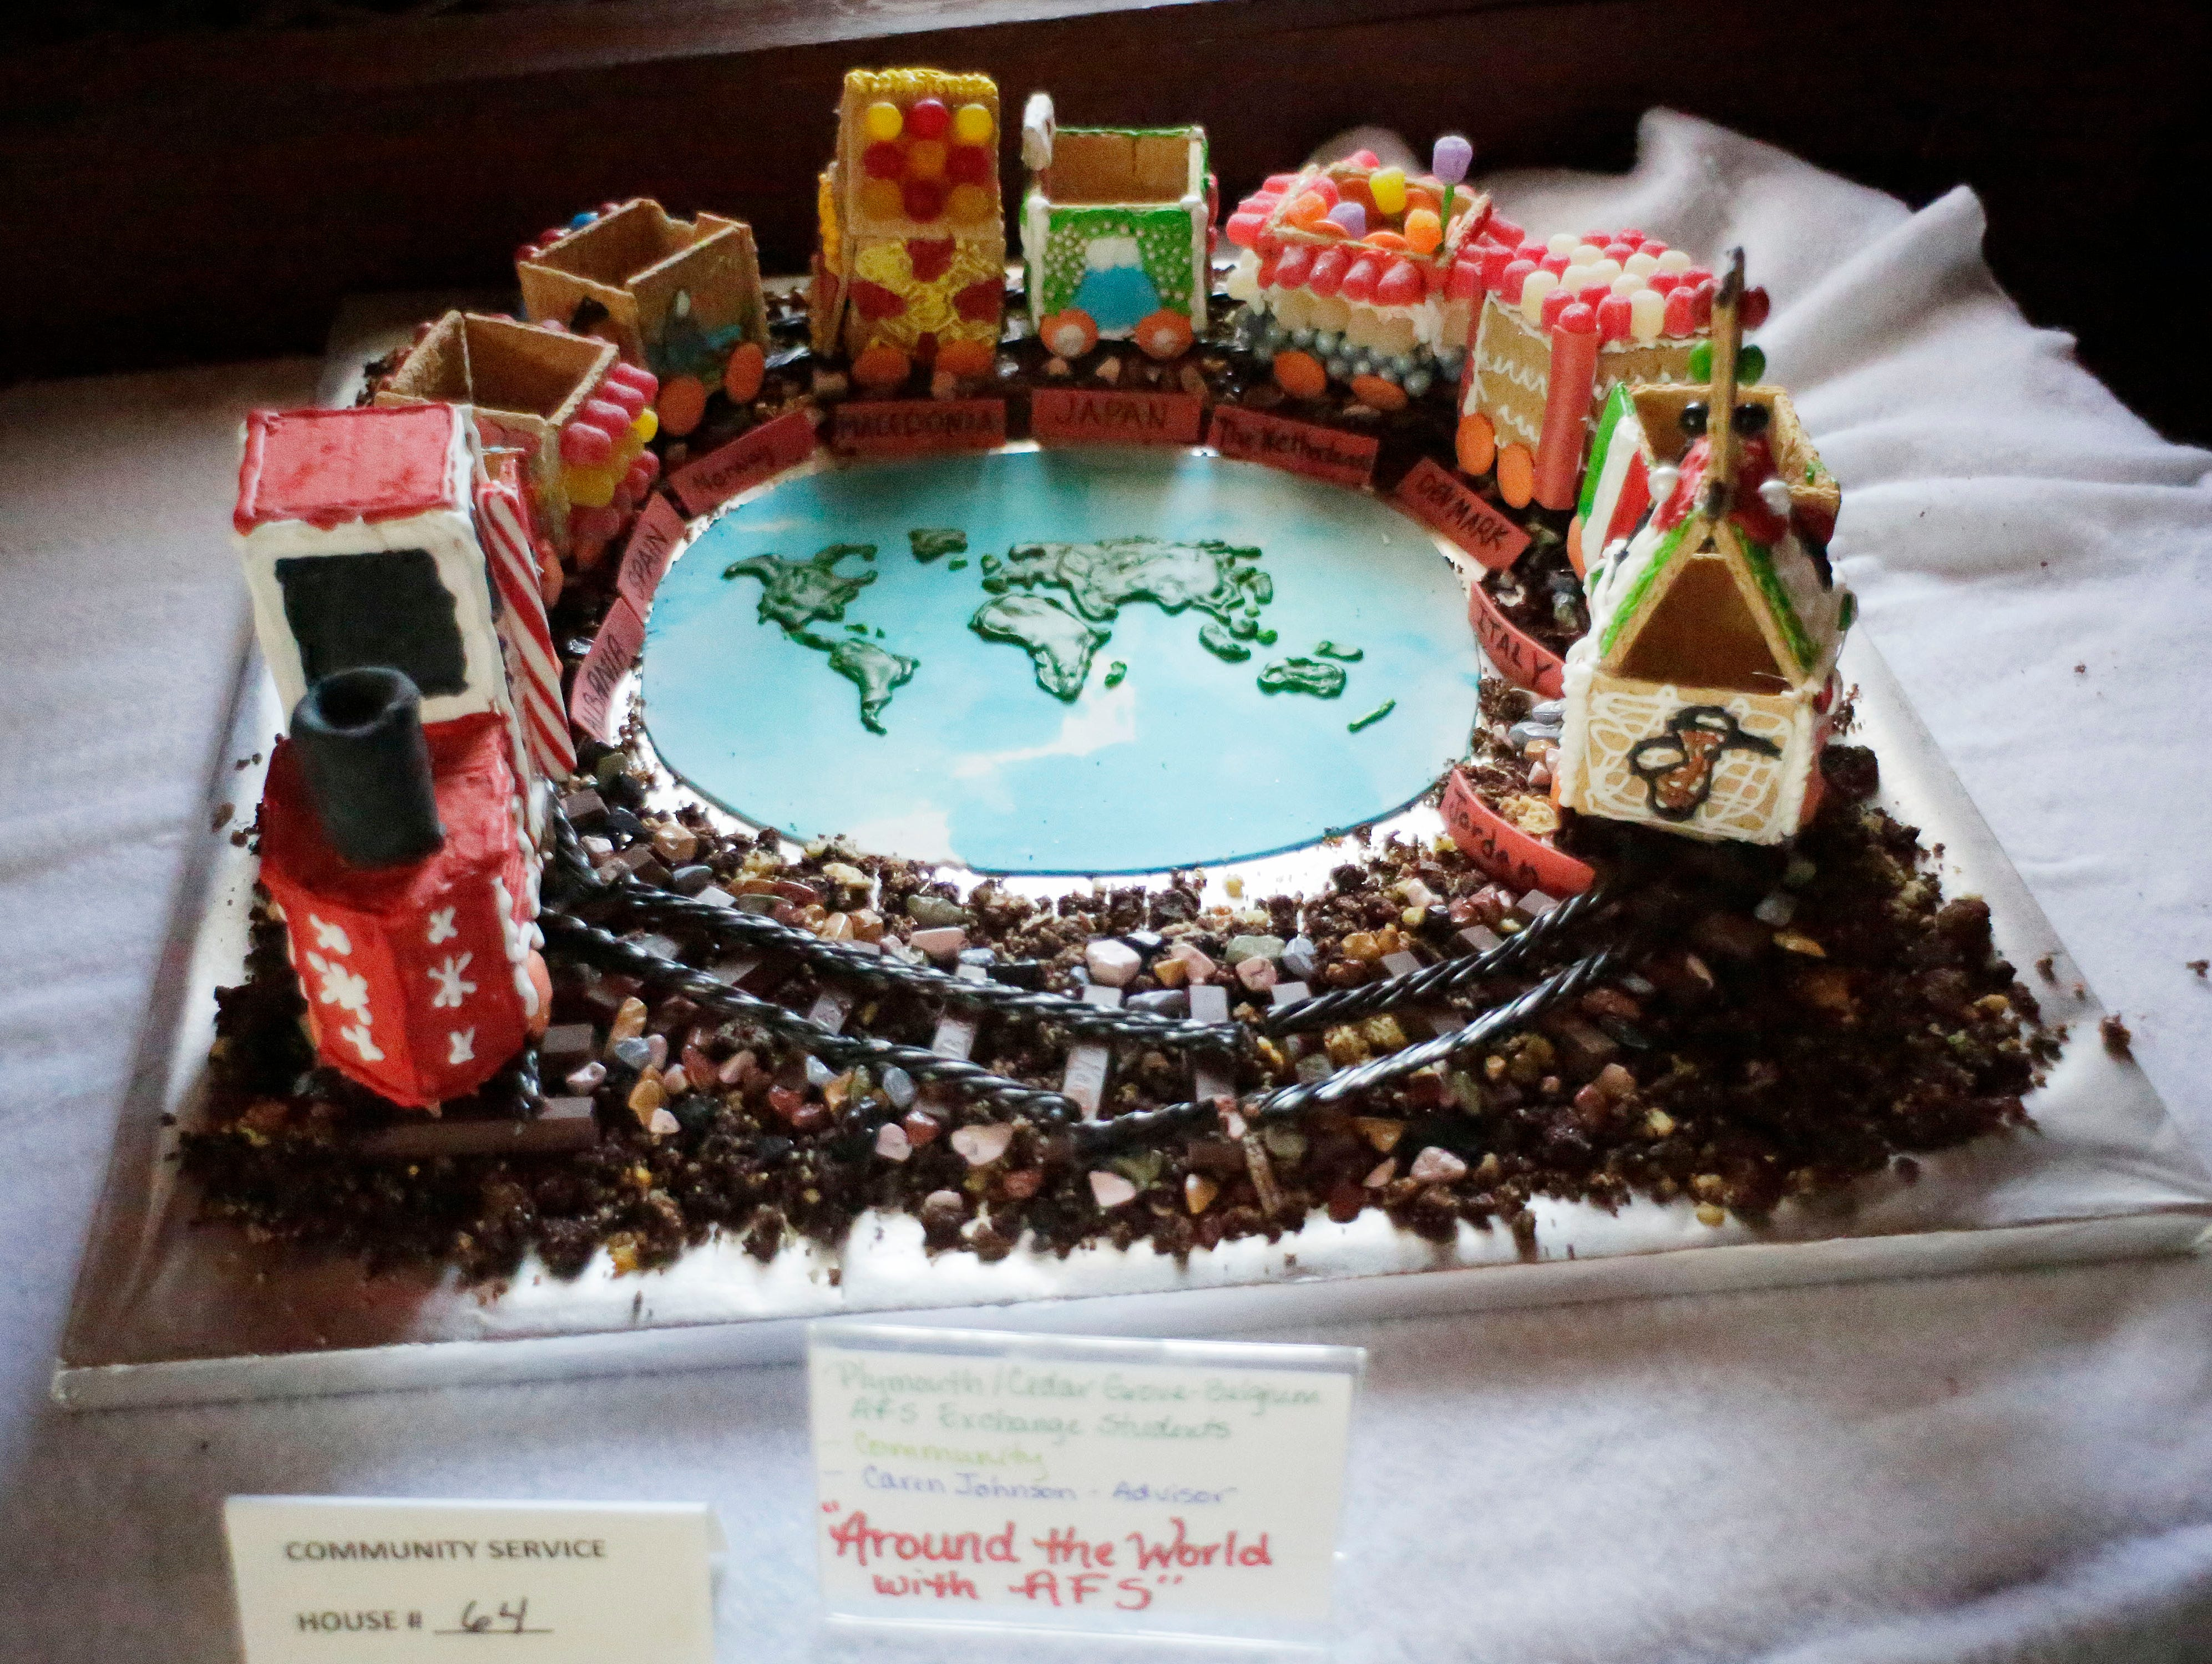 Around the World with AFS at the annual Waelderhaus Gingerbread Festival, Saturday, December 8, 2018, in Kohler, Wis.